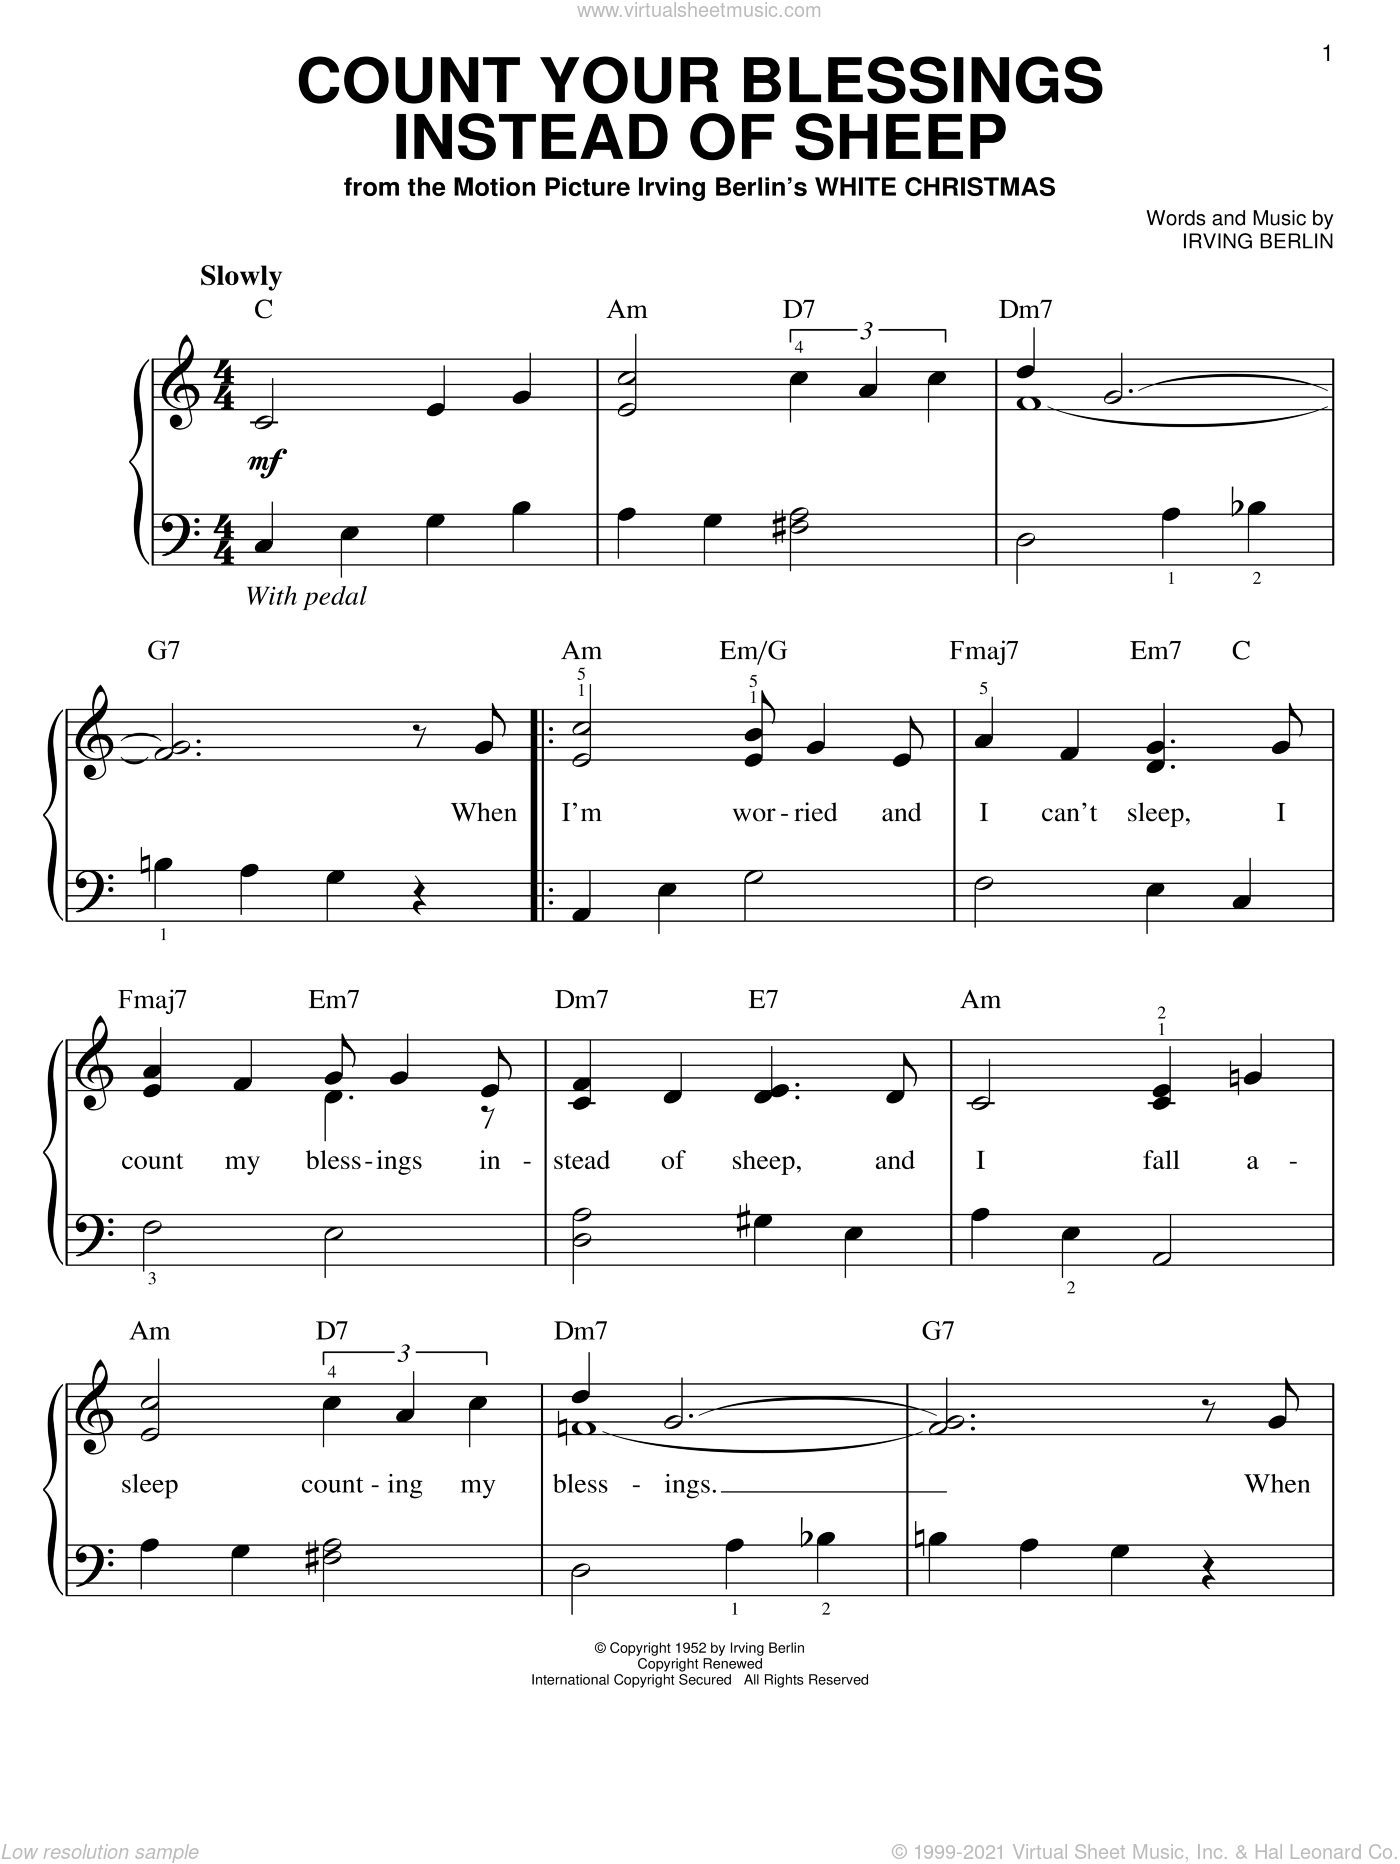 Count Your Blessings Instead Of Sheep, (easy) sheet music for piano solo by Irving Berlin, Bing Crosby, Eddie Fisher, Rosemary Clooney and White Christmas (Musical), easy skill level